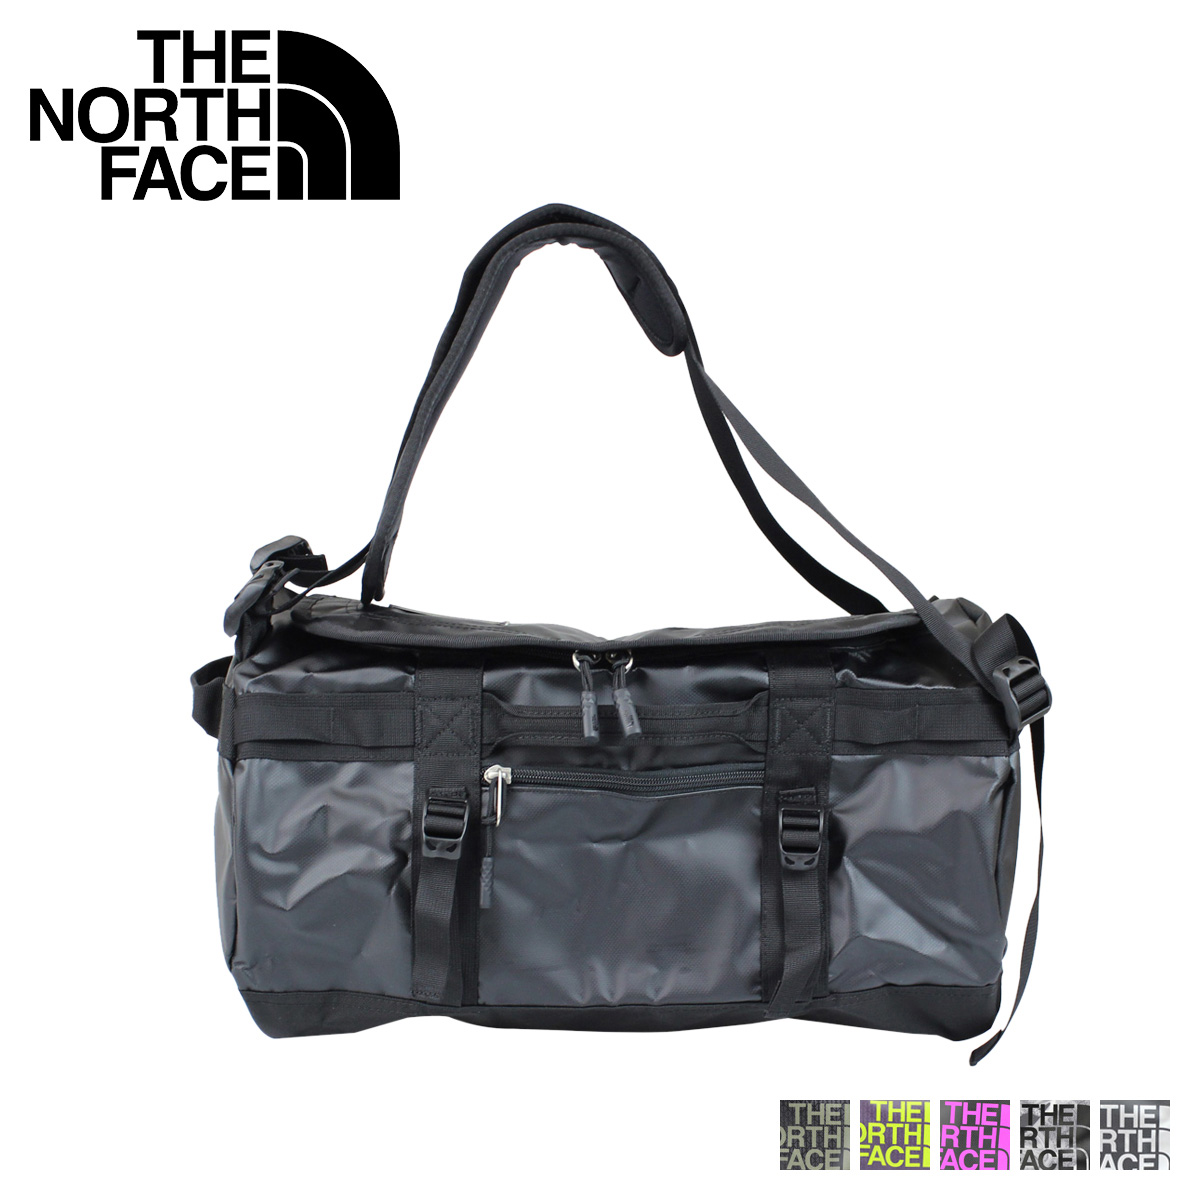 989092f0037 «Soon» «10 7 days stock» north face THE NORTH FACE mens Womens duffle bags  bag CWW4 33L 5 color BASE CAMP DUFFEL-XS  10 7 new in stock